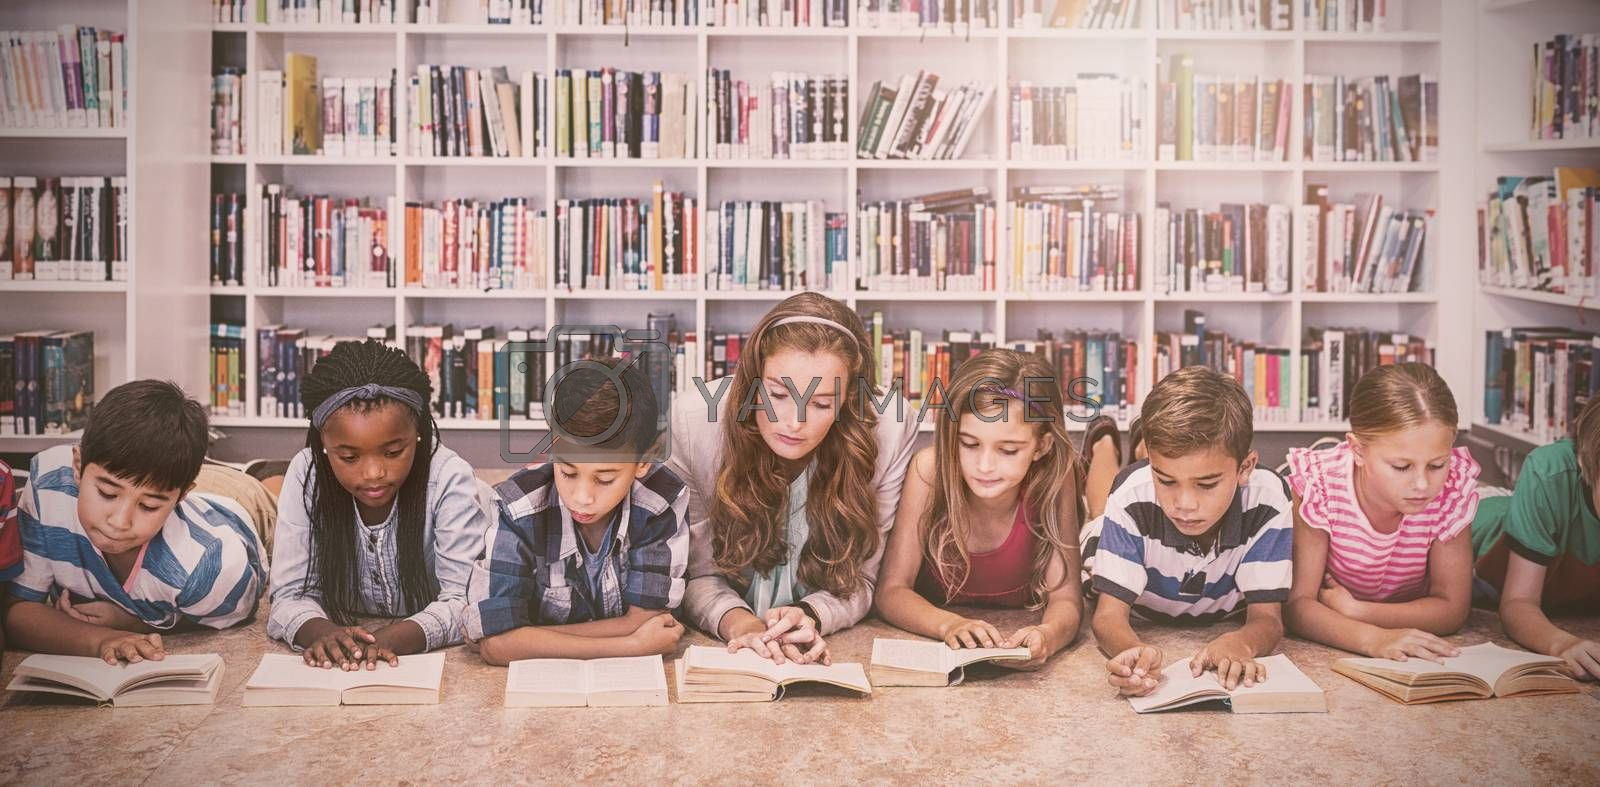 Teacher reading books to her students by Wavebreakmedia